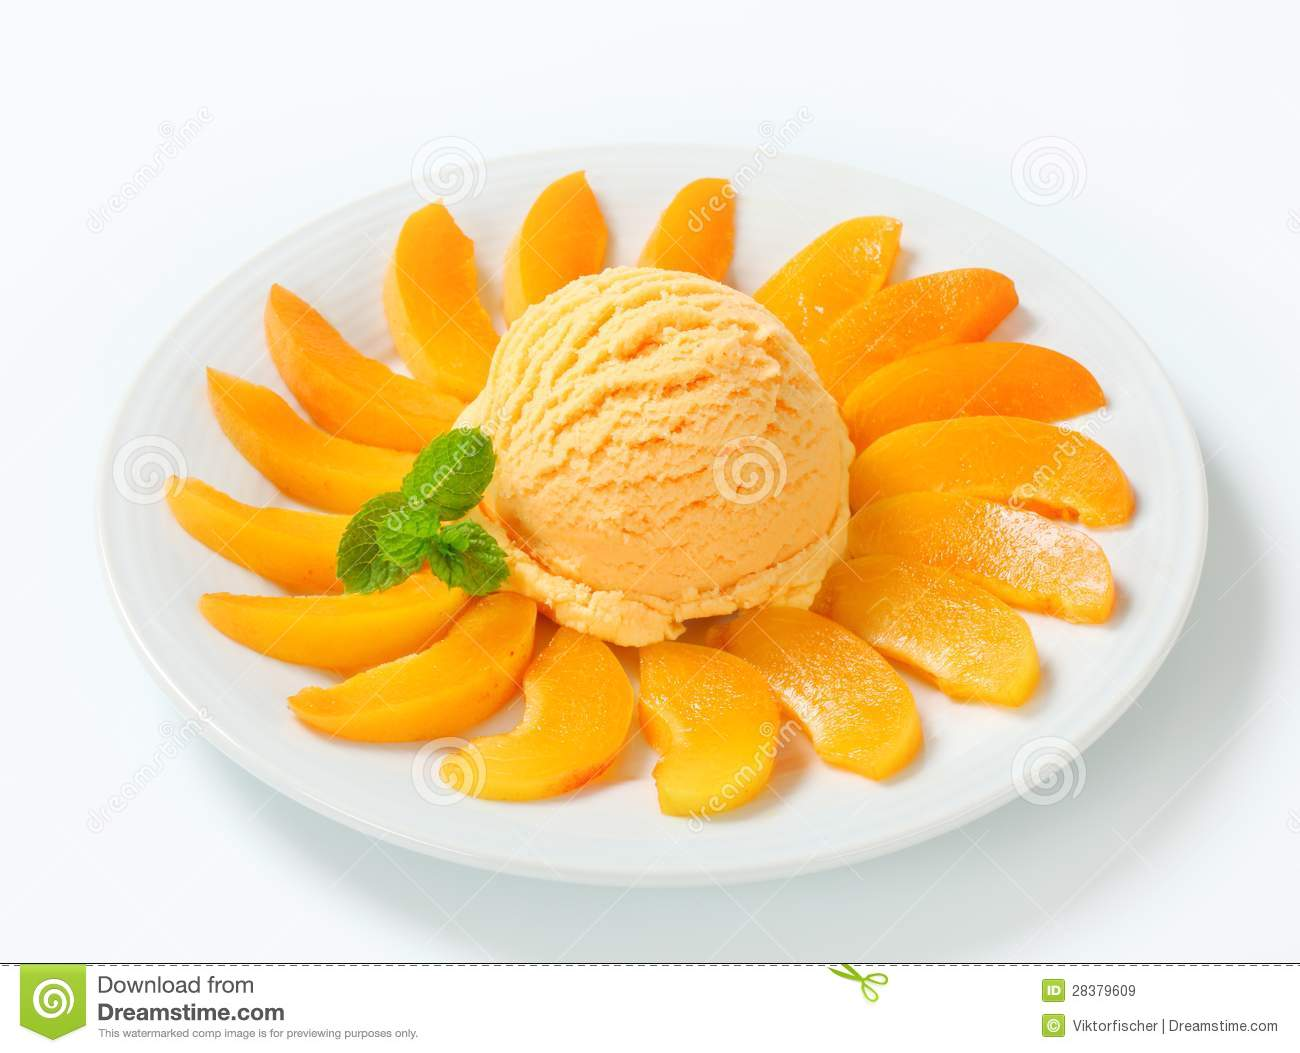 Apricot Ice Cream Royalty Free Stock Images - Image: 28379609